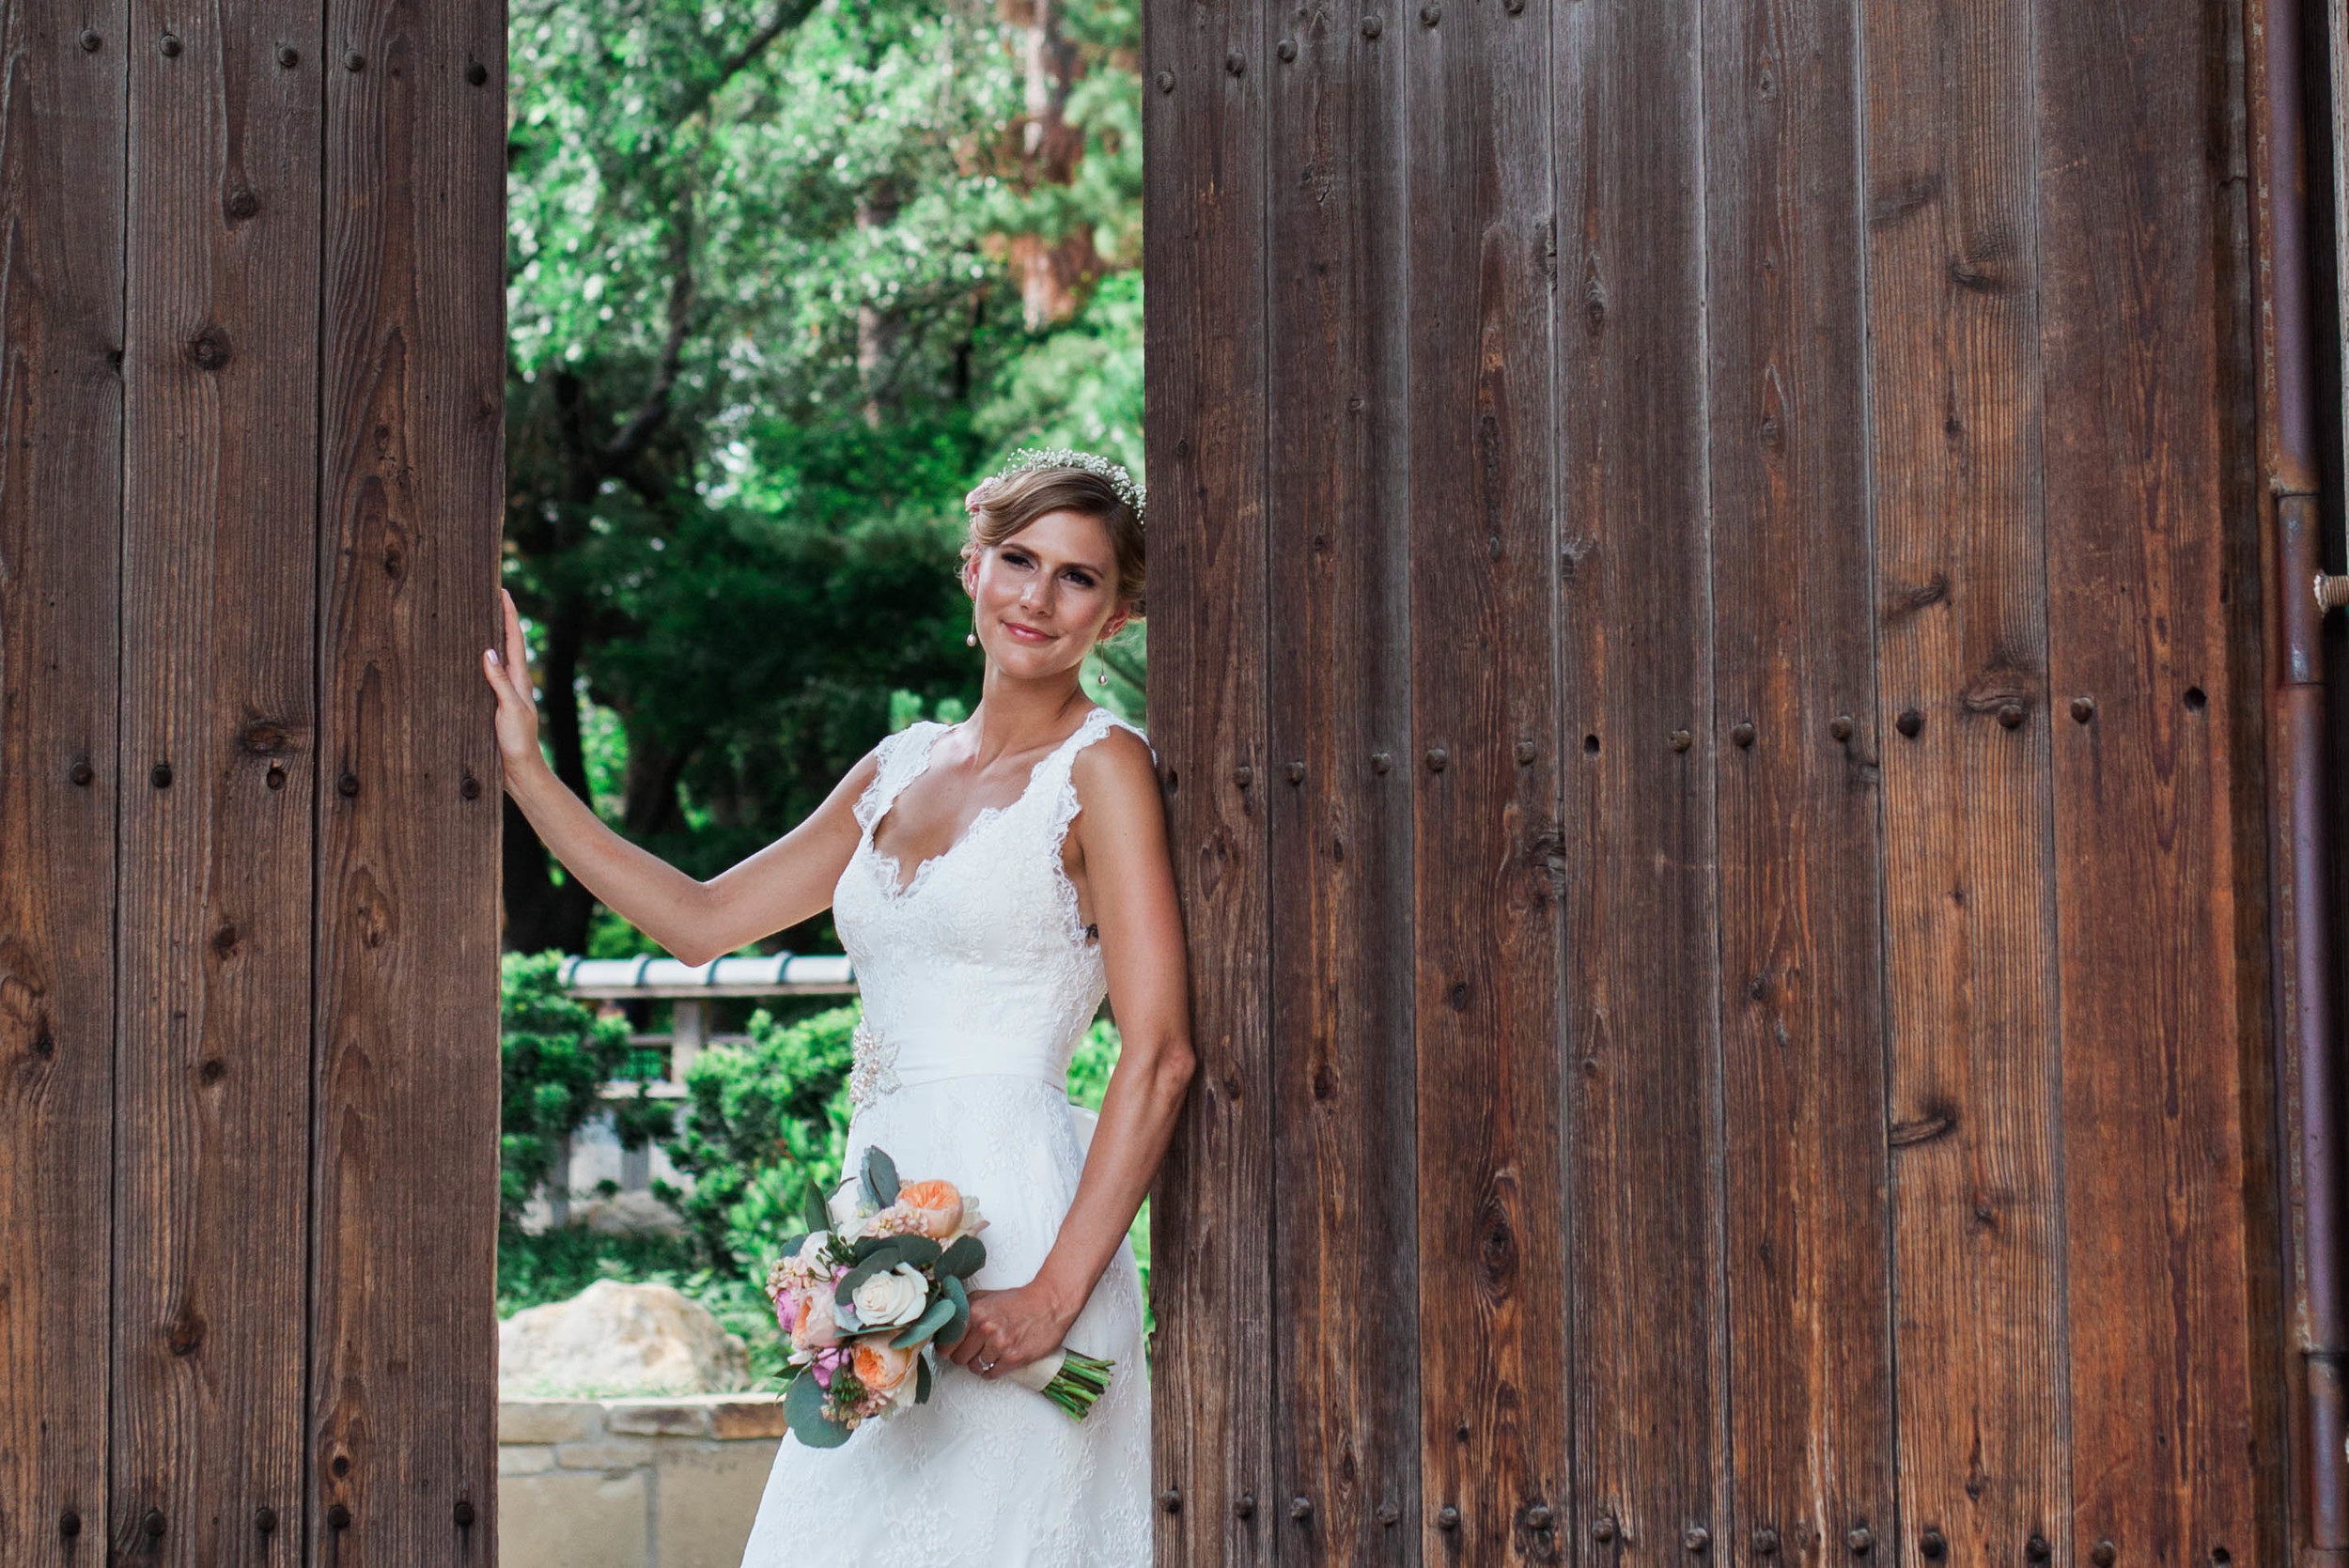 botanical gardens- liz and addision- fort worth wedding photographer-16.jpg